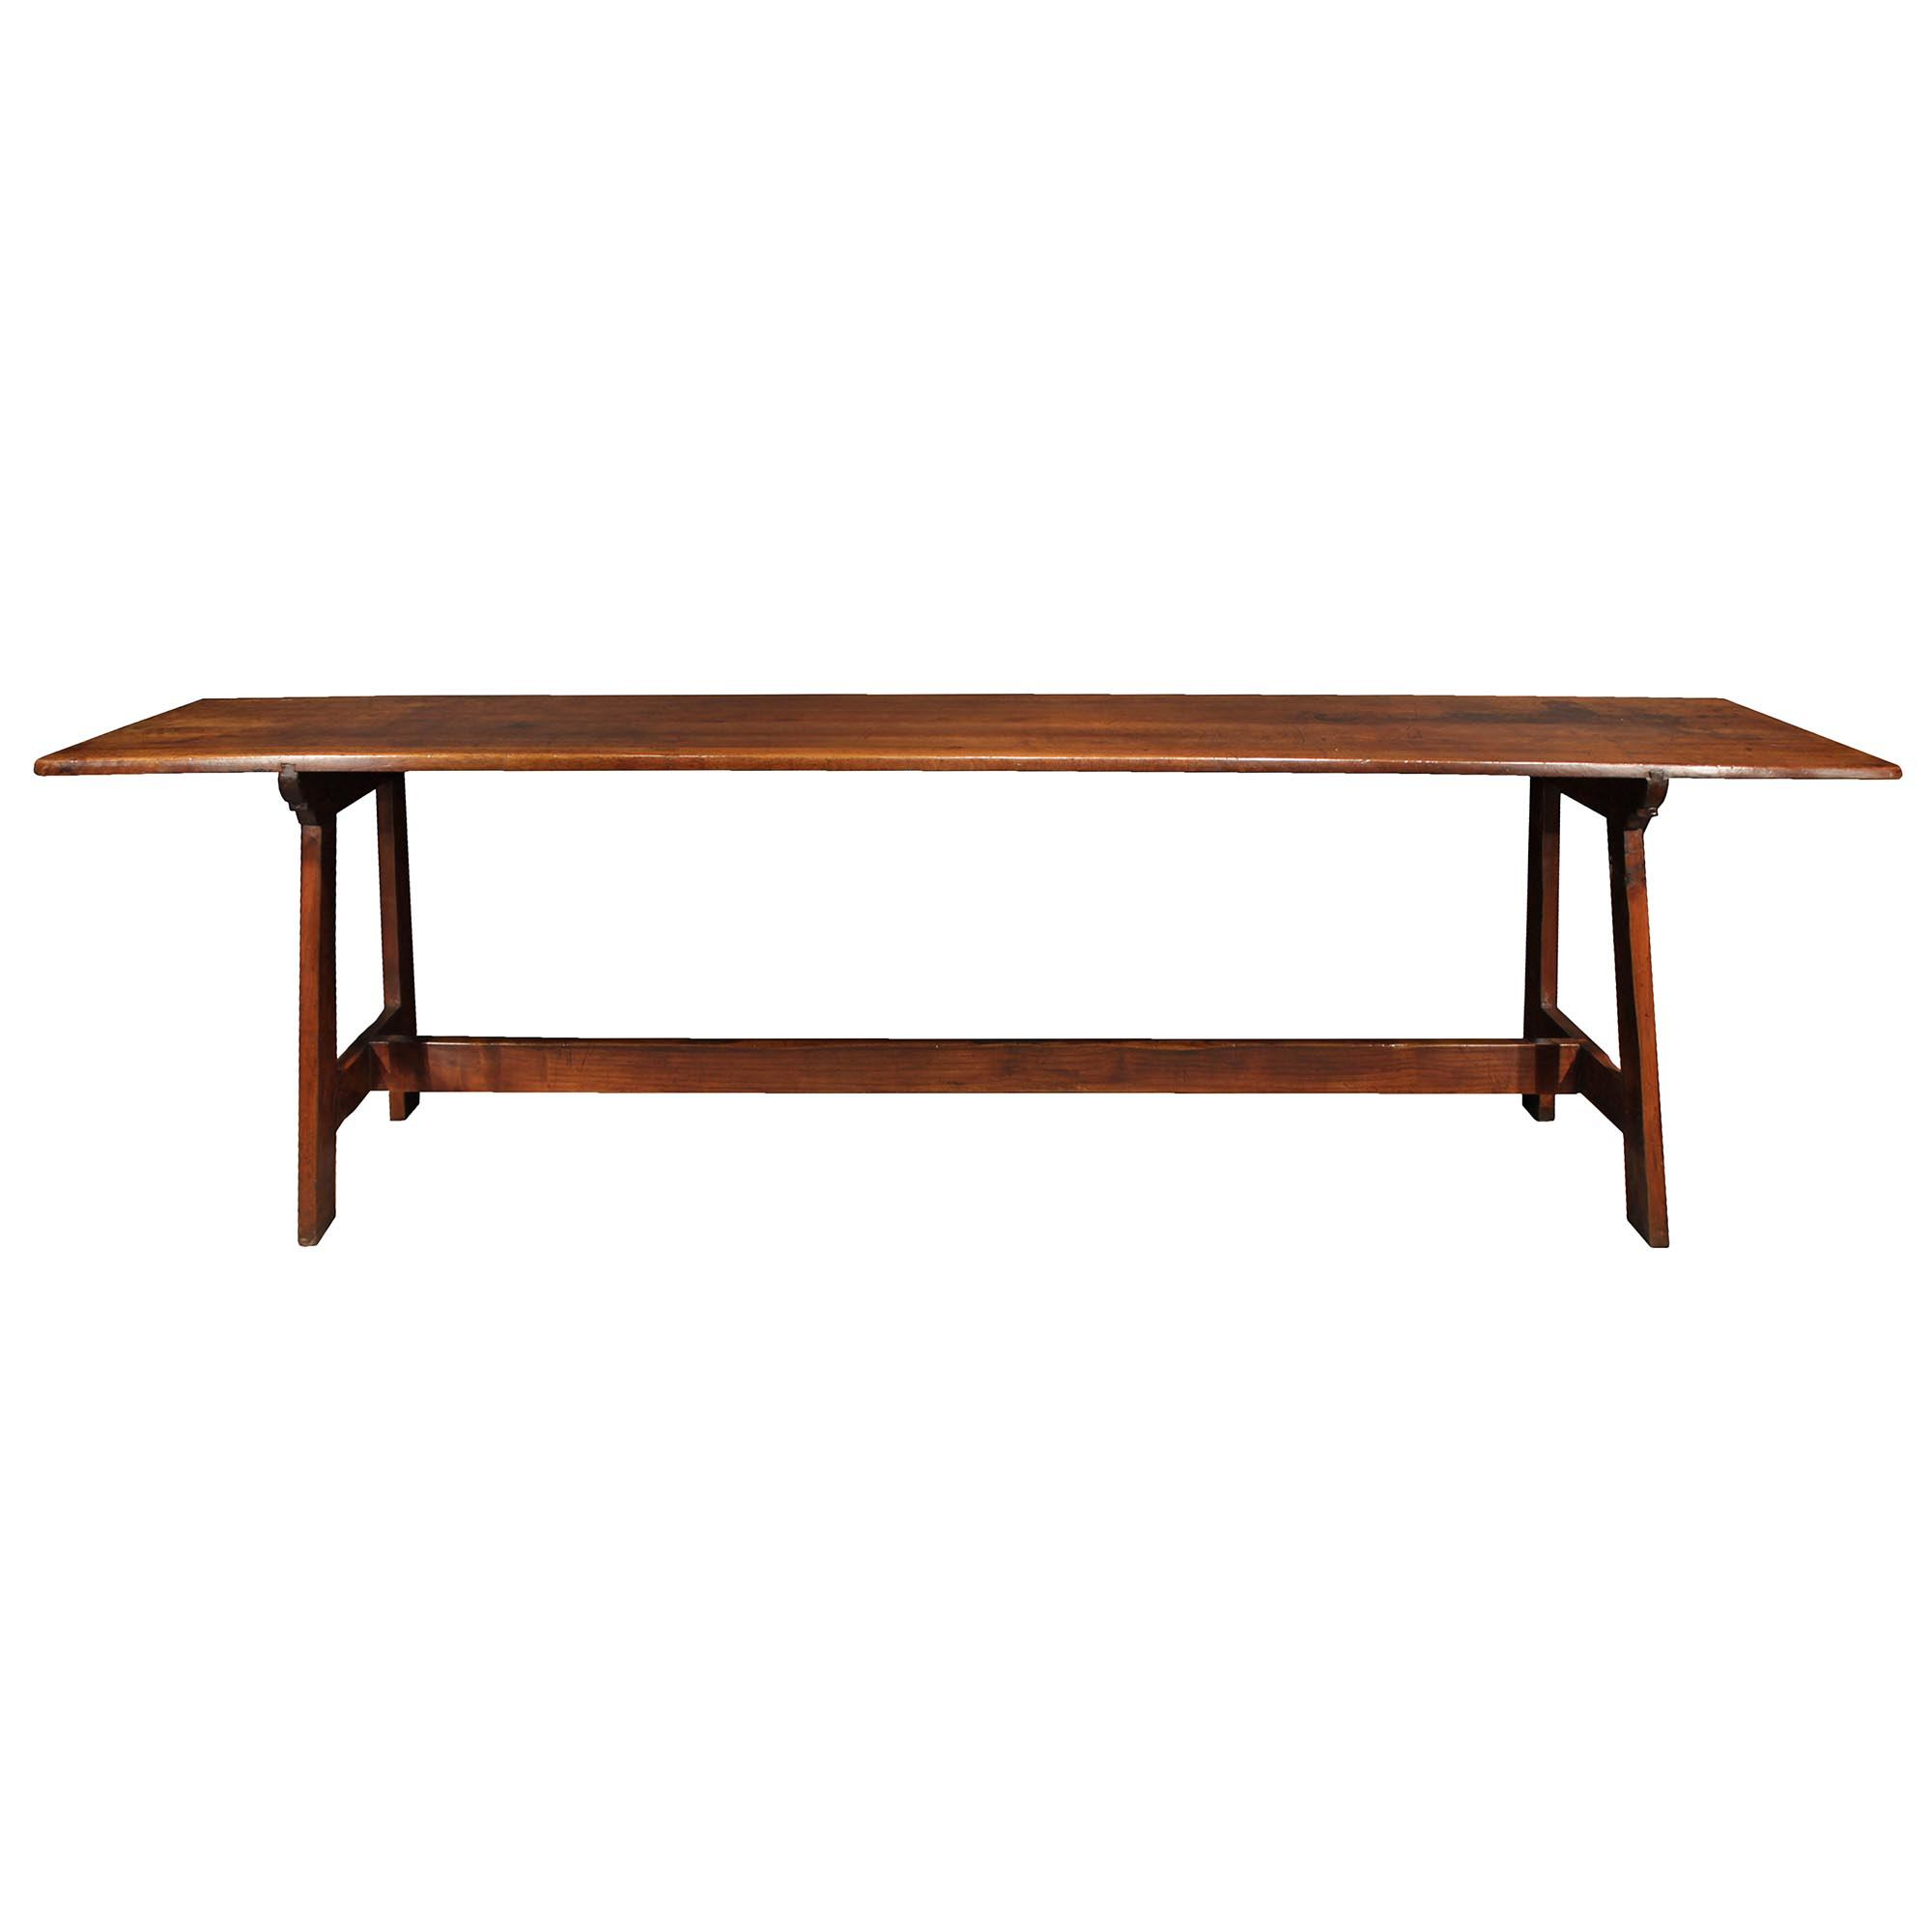 Home / Furniture / Tables / Dining Tables / French 18th Century Walnut Trestle  Table